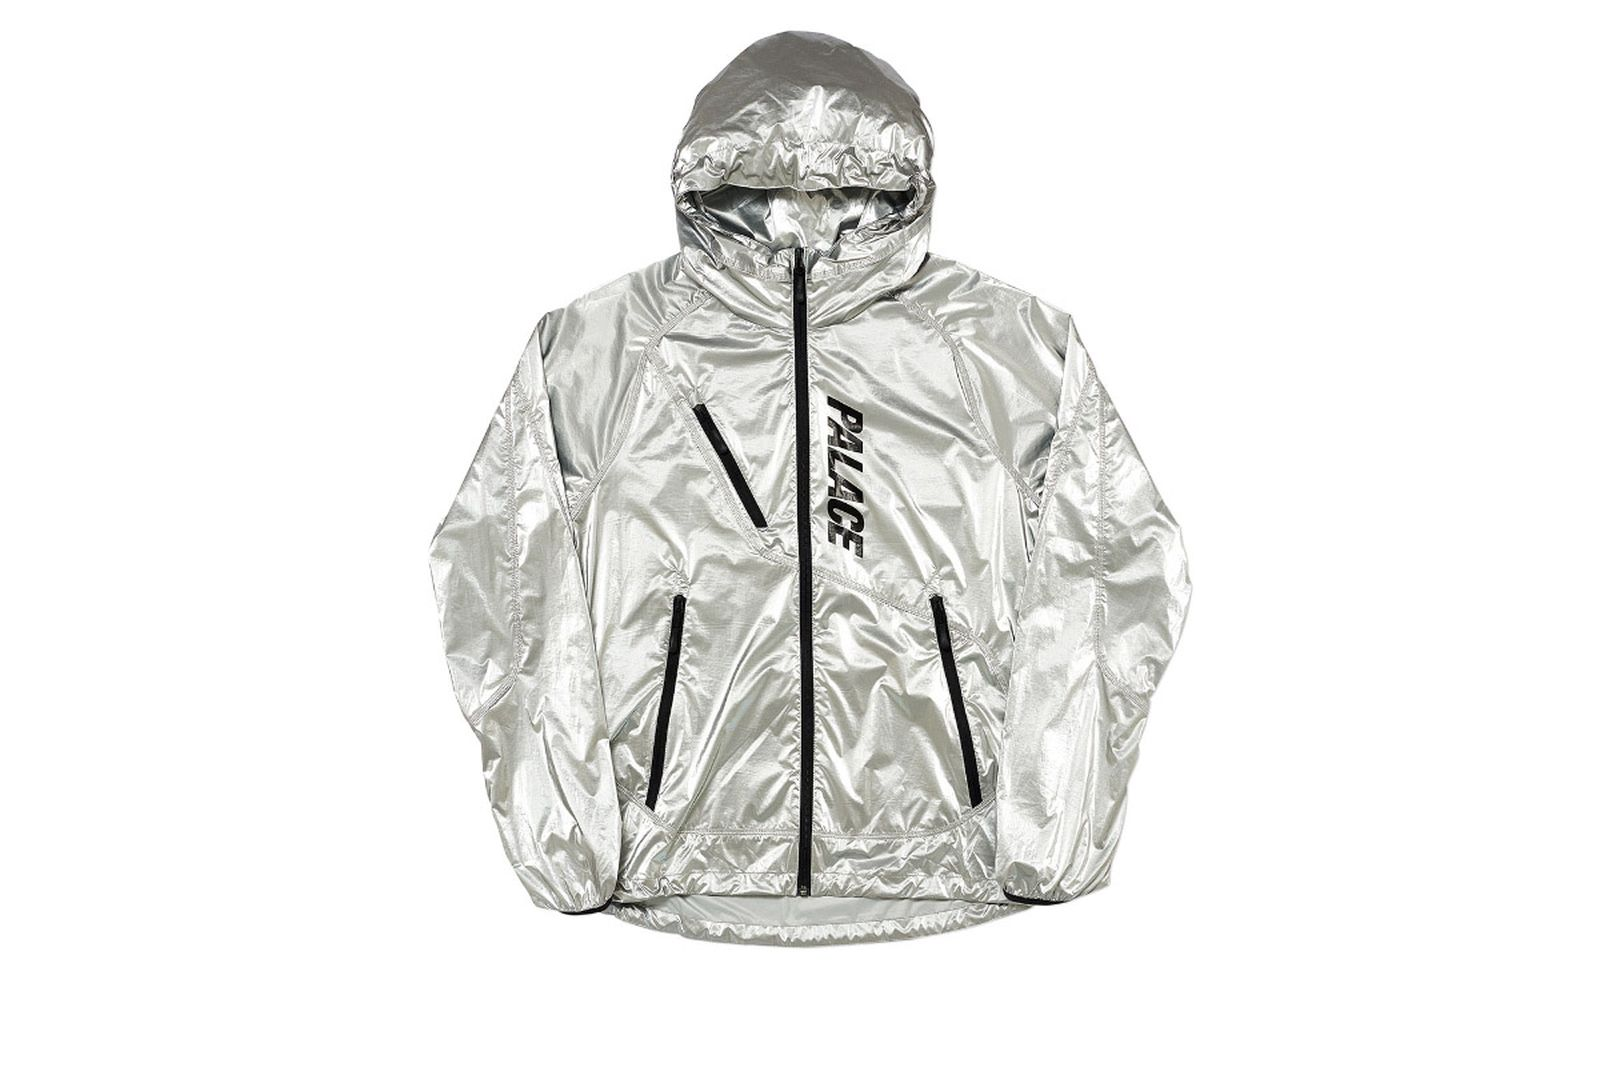 Palace 2019 Autumn Jacket G Loss Jacket silver front fw19